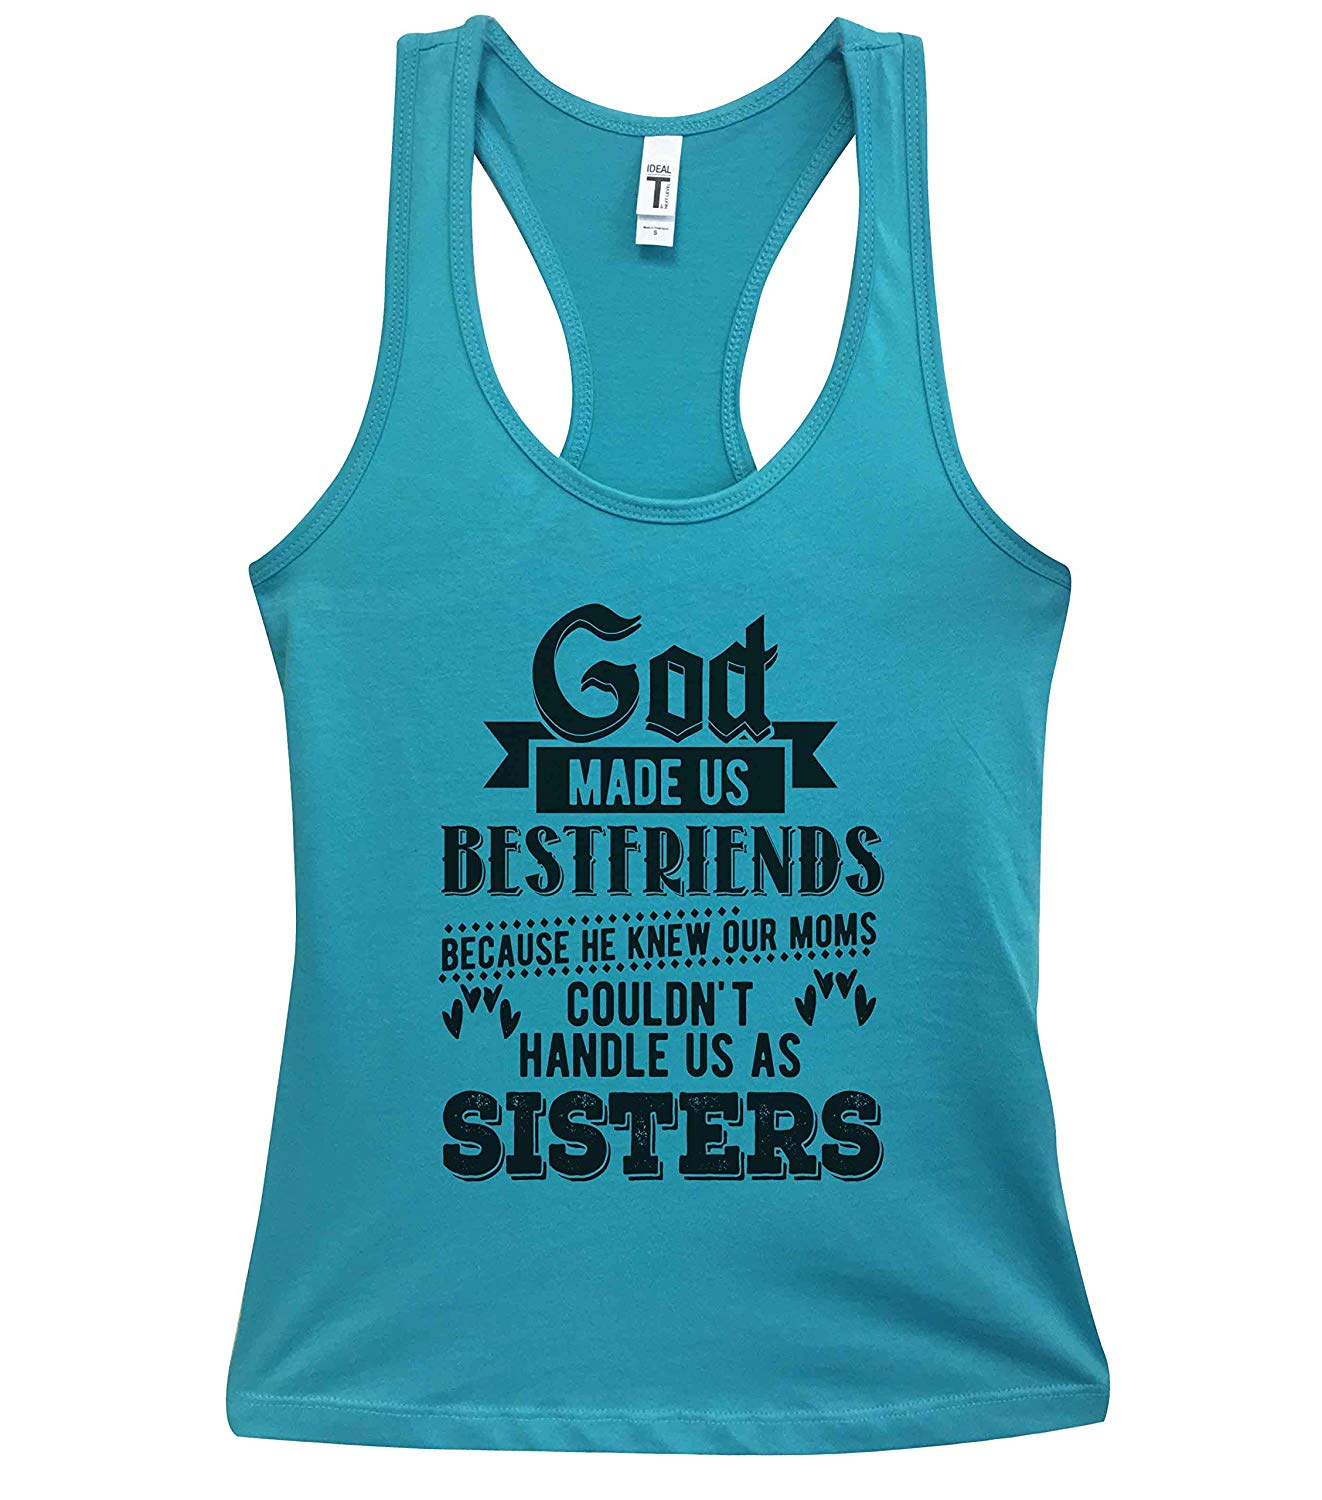 Buy Best Friend Quote T Shirts God Made Us Best Friends Cute